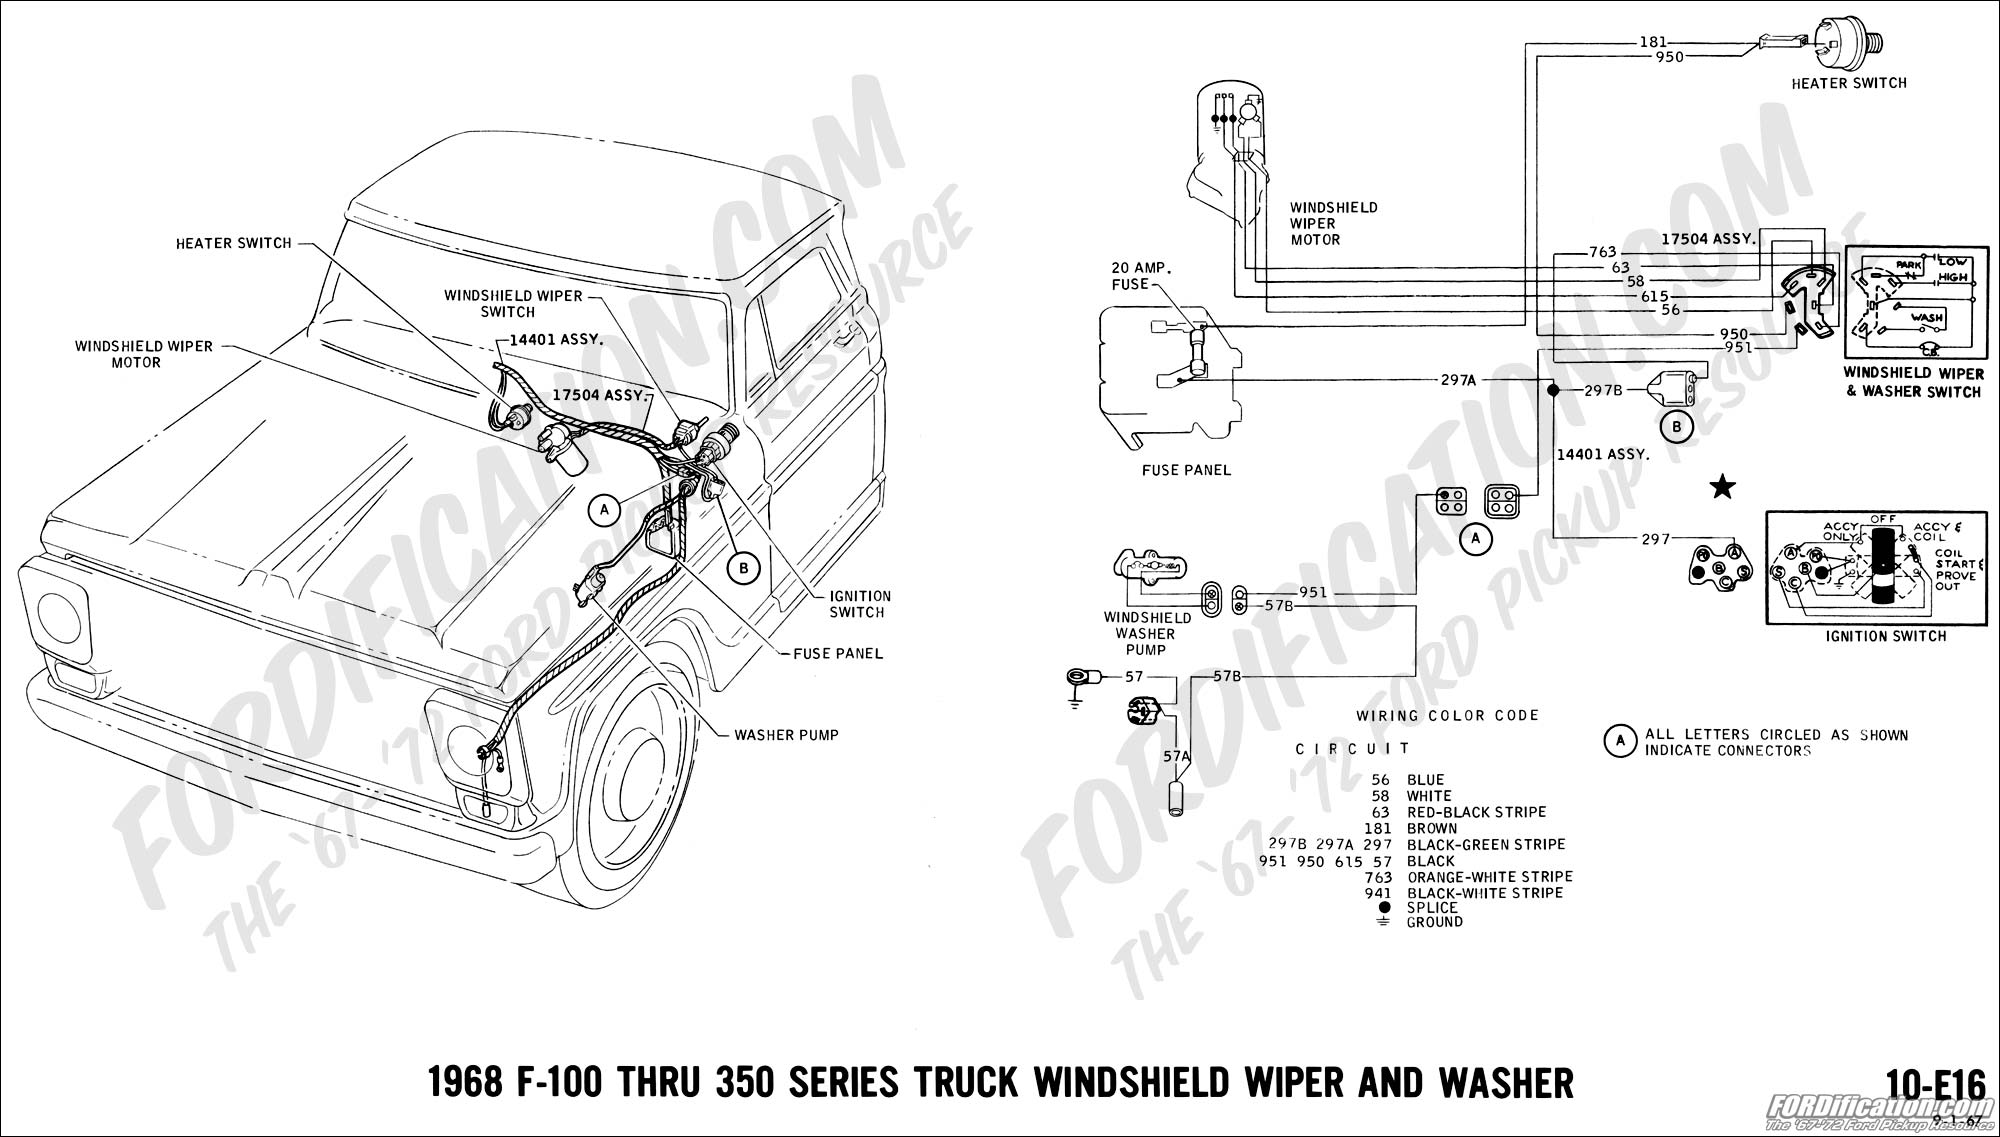 hight resolution of 1968 f 100 thru f 350 windshield wiper and washer